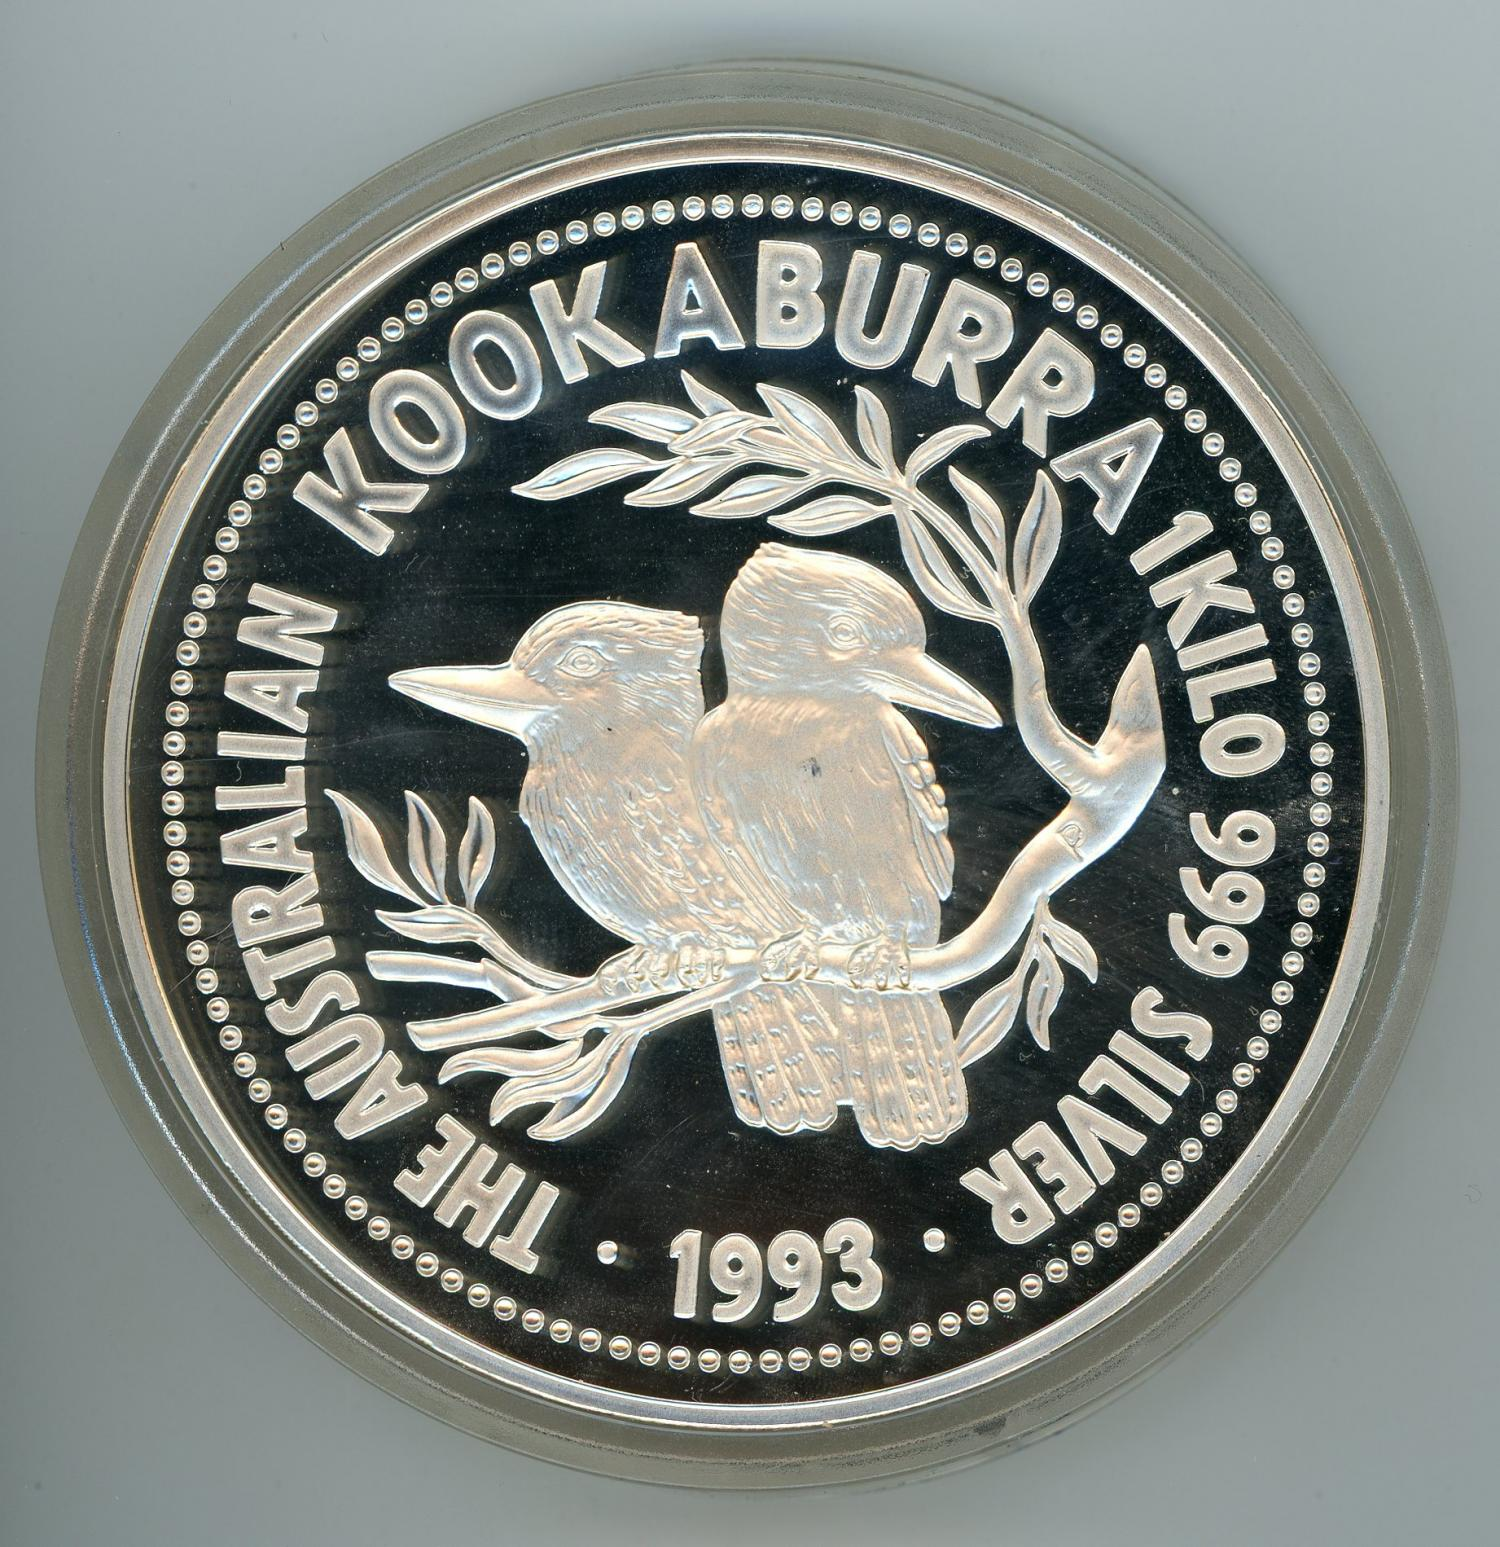 Thumbnail for 1993 One Kilo Proof Kookaburra